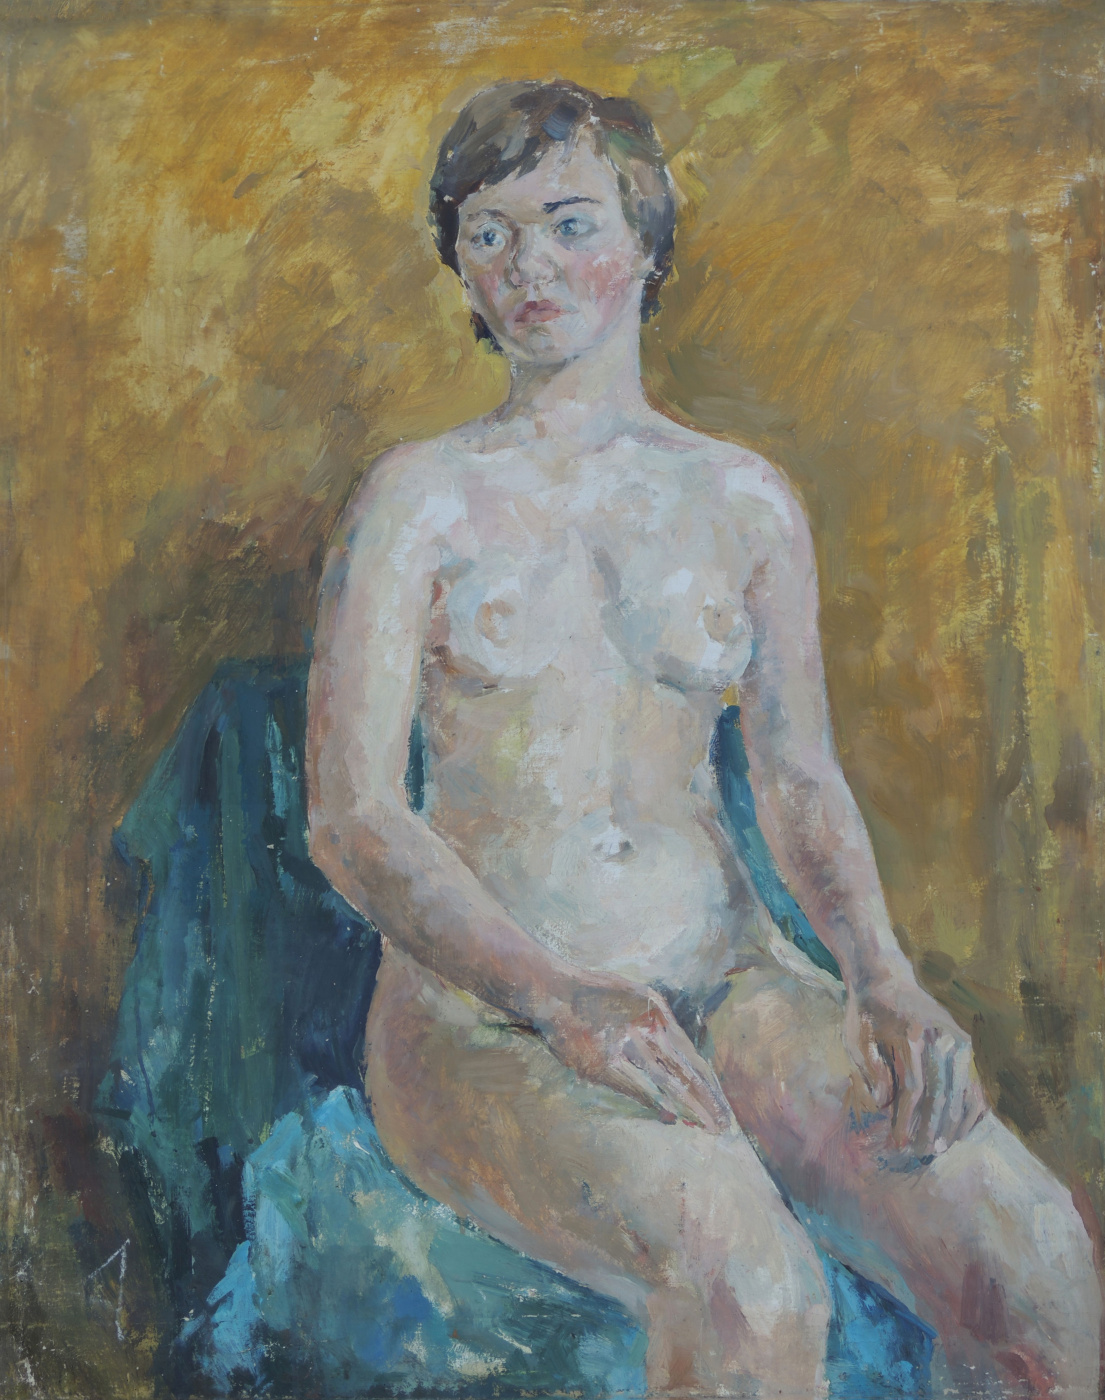 Alexandrovich Rudolf Pavlov. Nude on yellow blue.